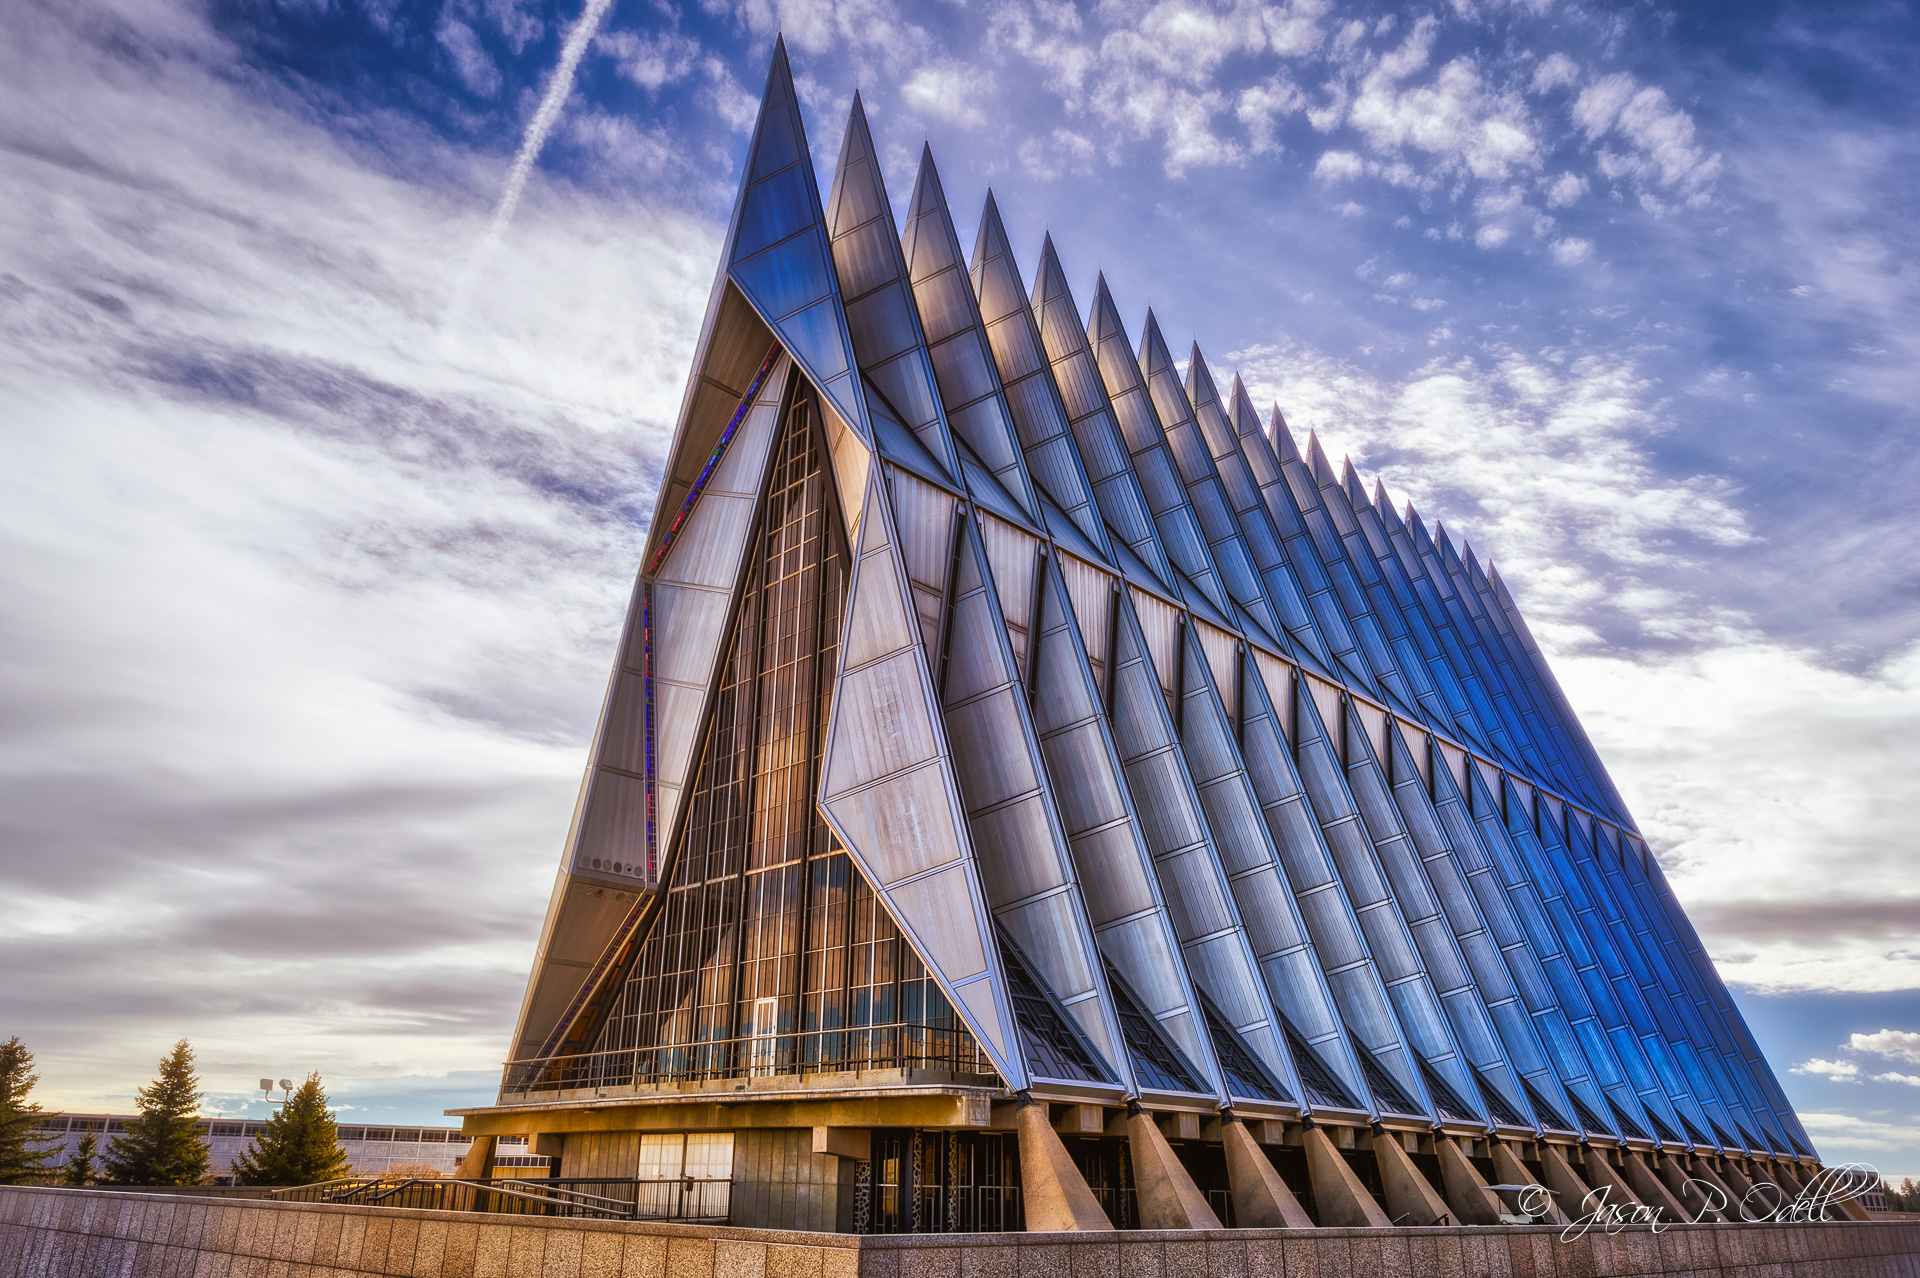 United States Air Force Academy Cadet Chapel in HDR